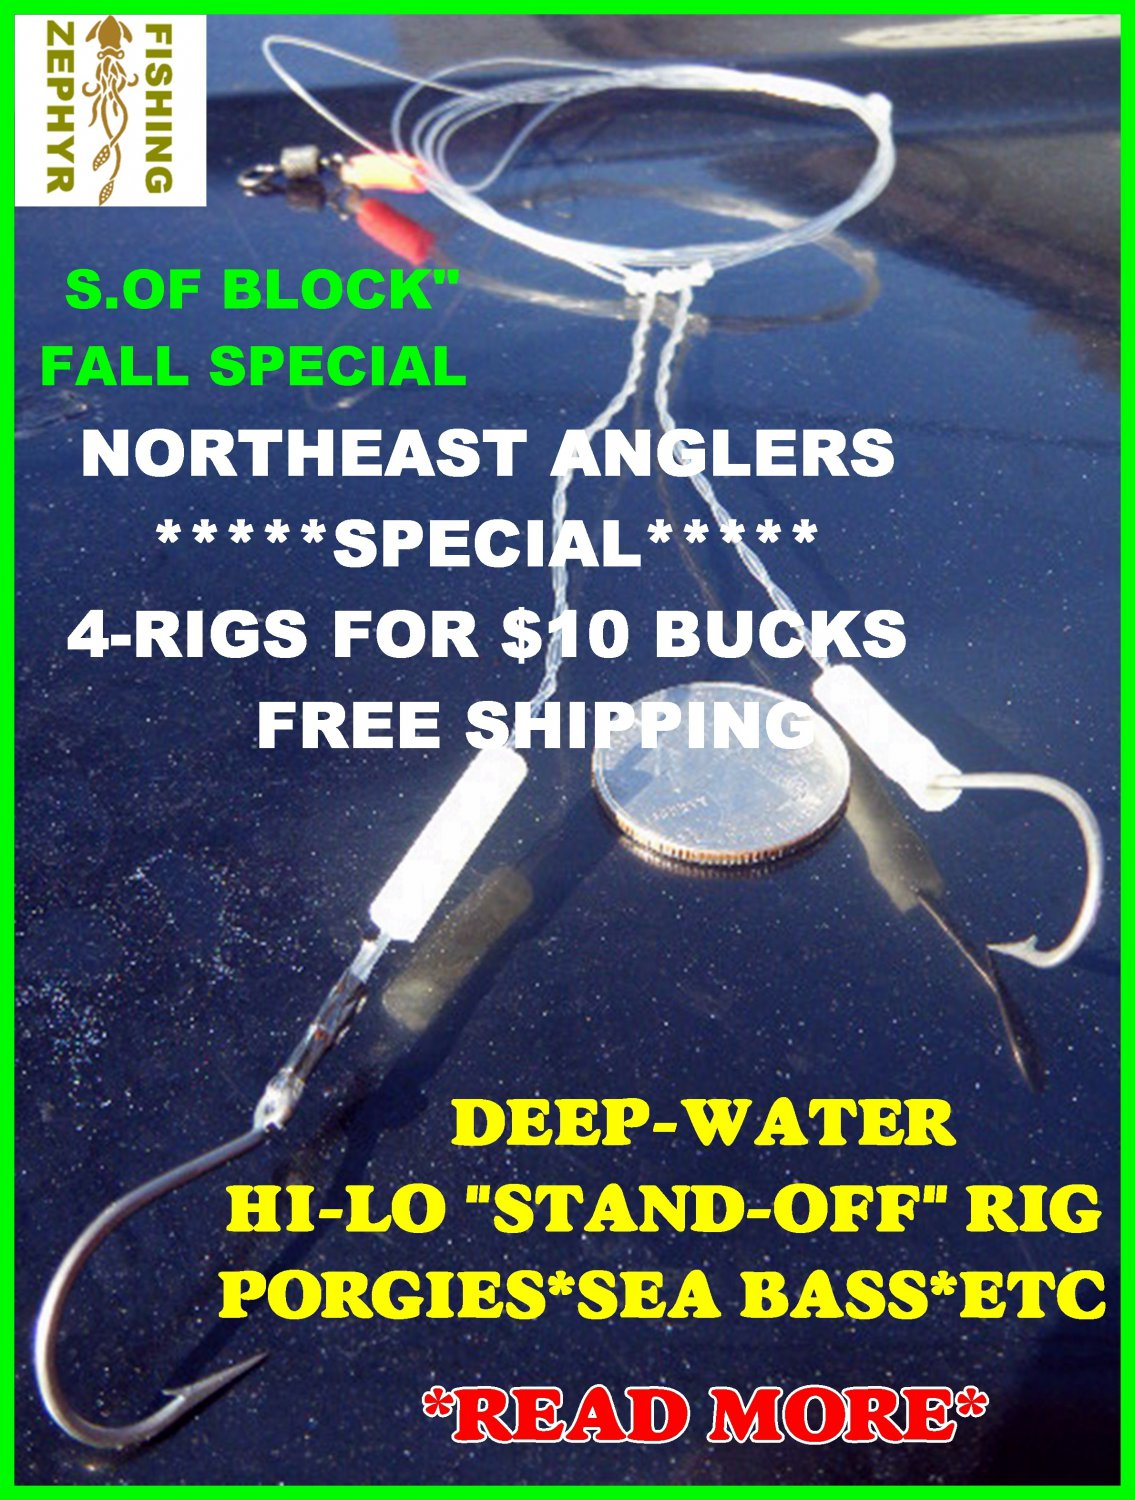 """PORGY SEA BASS """"STAND-OFF""""RIG'S***PROMO SALE*LIMITED TIME**"""